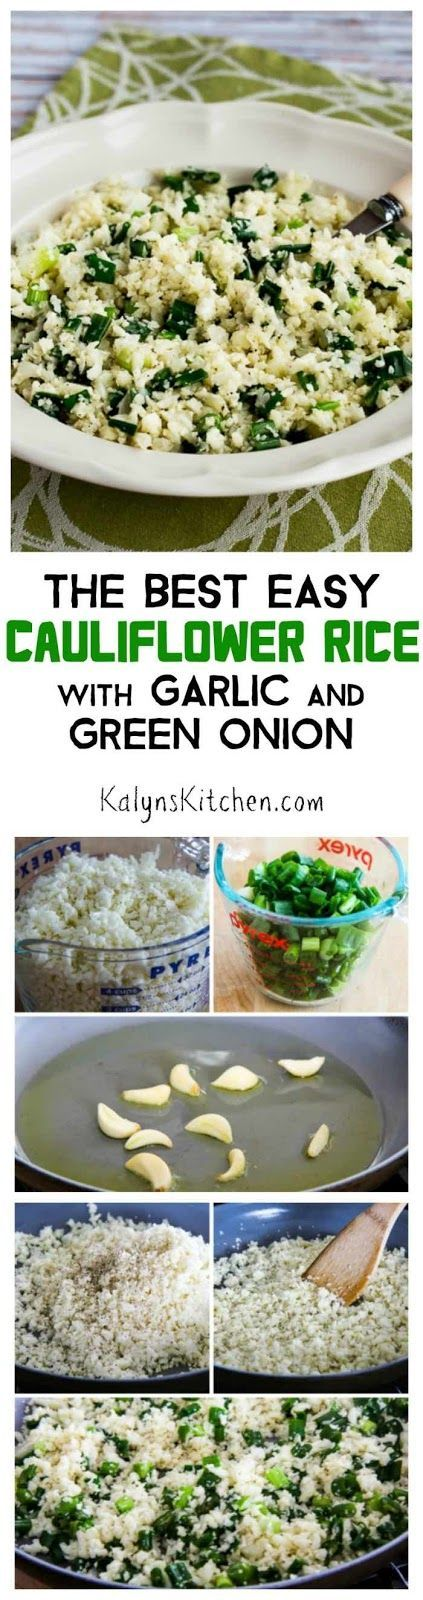 The Best Easy Cauliflower Rice with Garlic and Green Onion found on KalynsKitchen.com